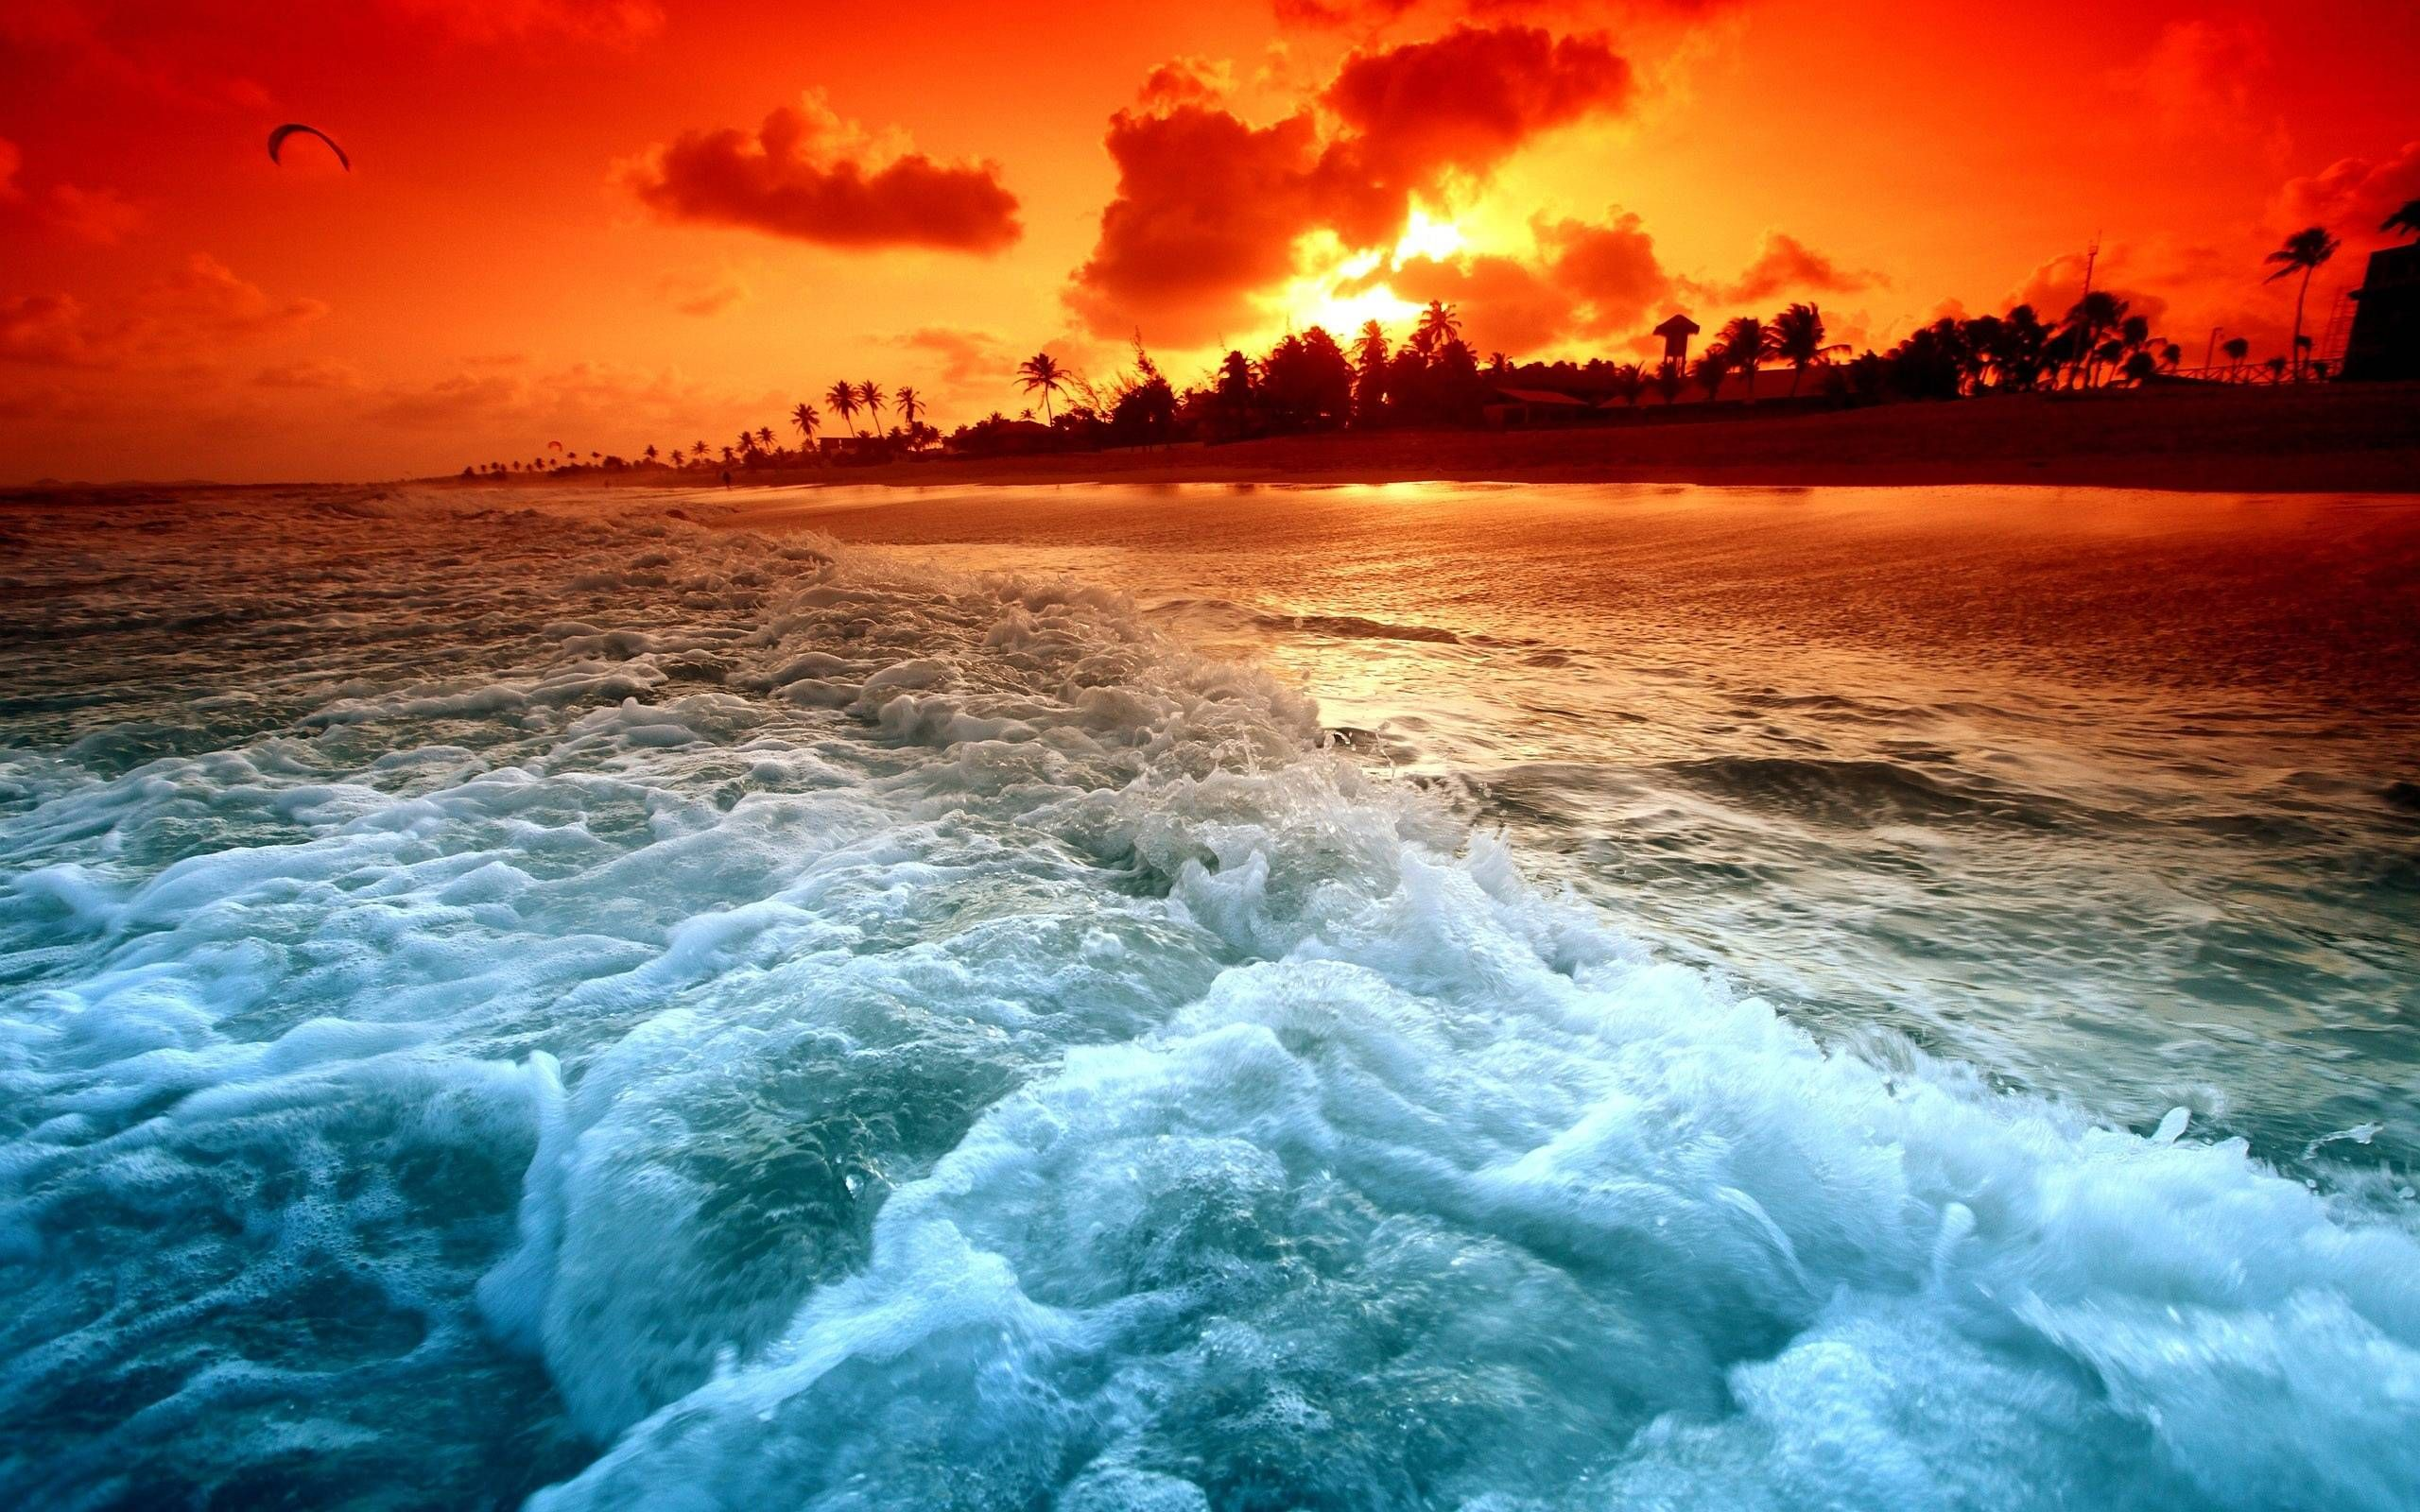 Ocean Sunset Wallpapers  Waves ocean Sunset 2560x1600